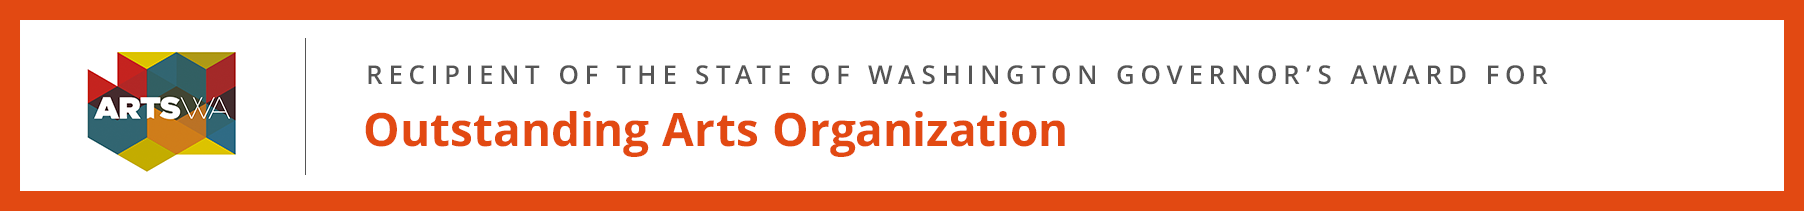 Recipient of the State of Washington Governor's Award for Outstanding Arts Organization